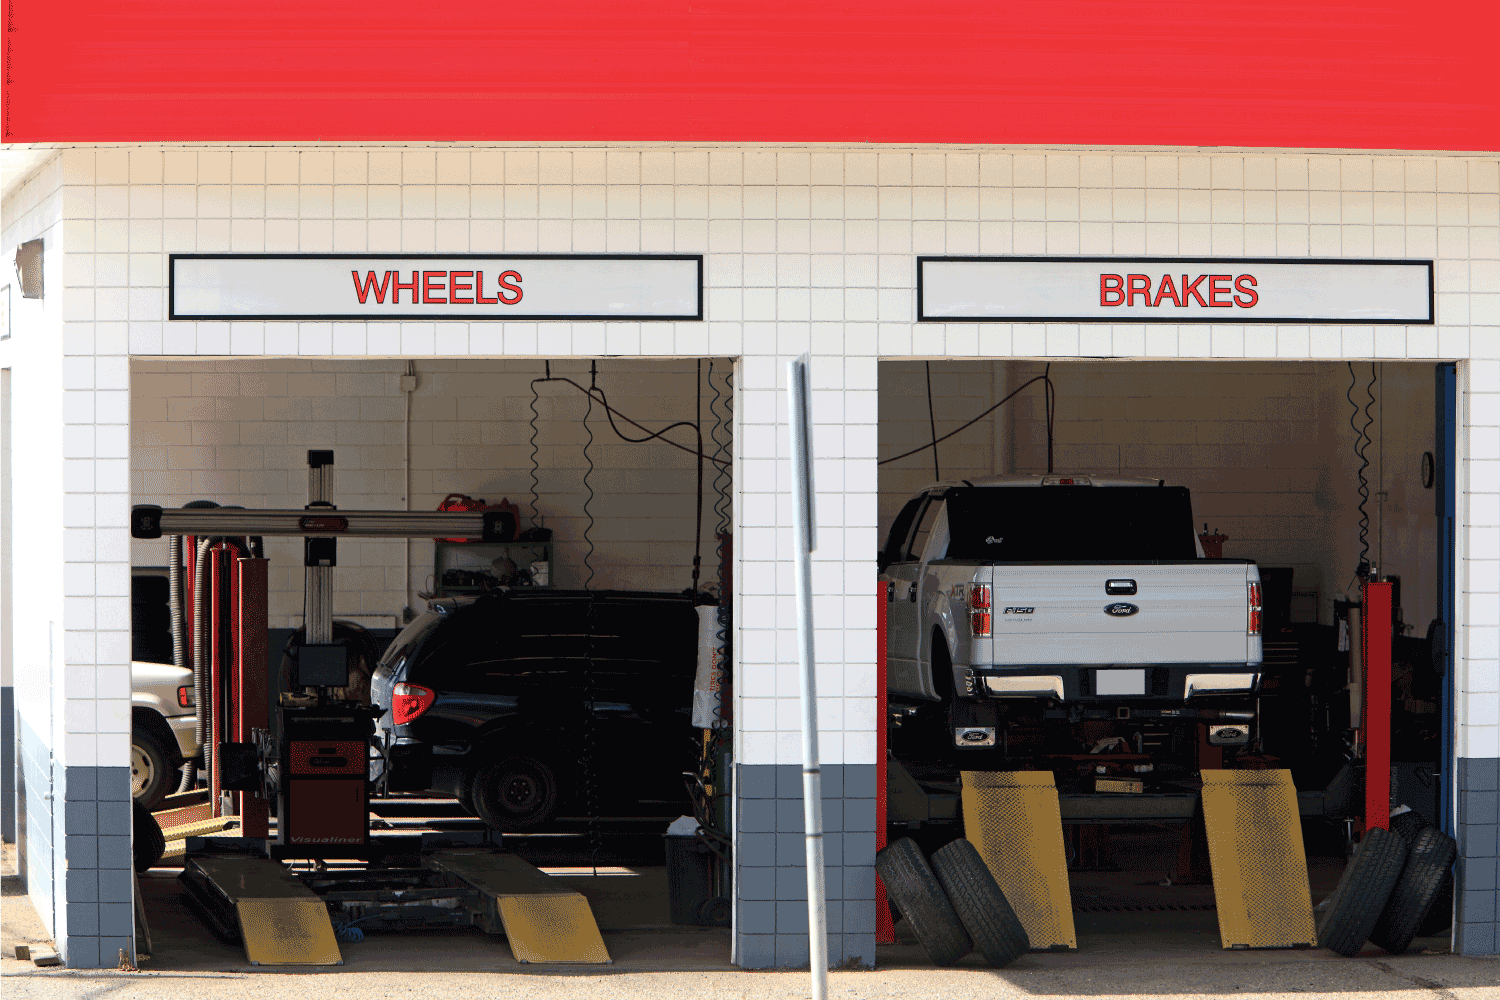 Exterior/Interior of two Service Bays for cars and trucks. Hydraulic hoists and ramps. One white truck on lift.